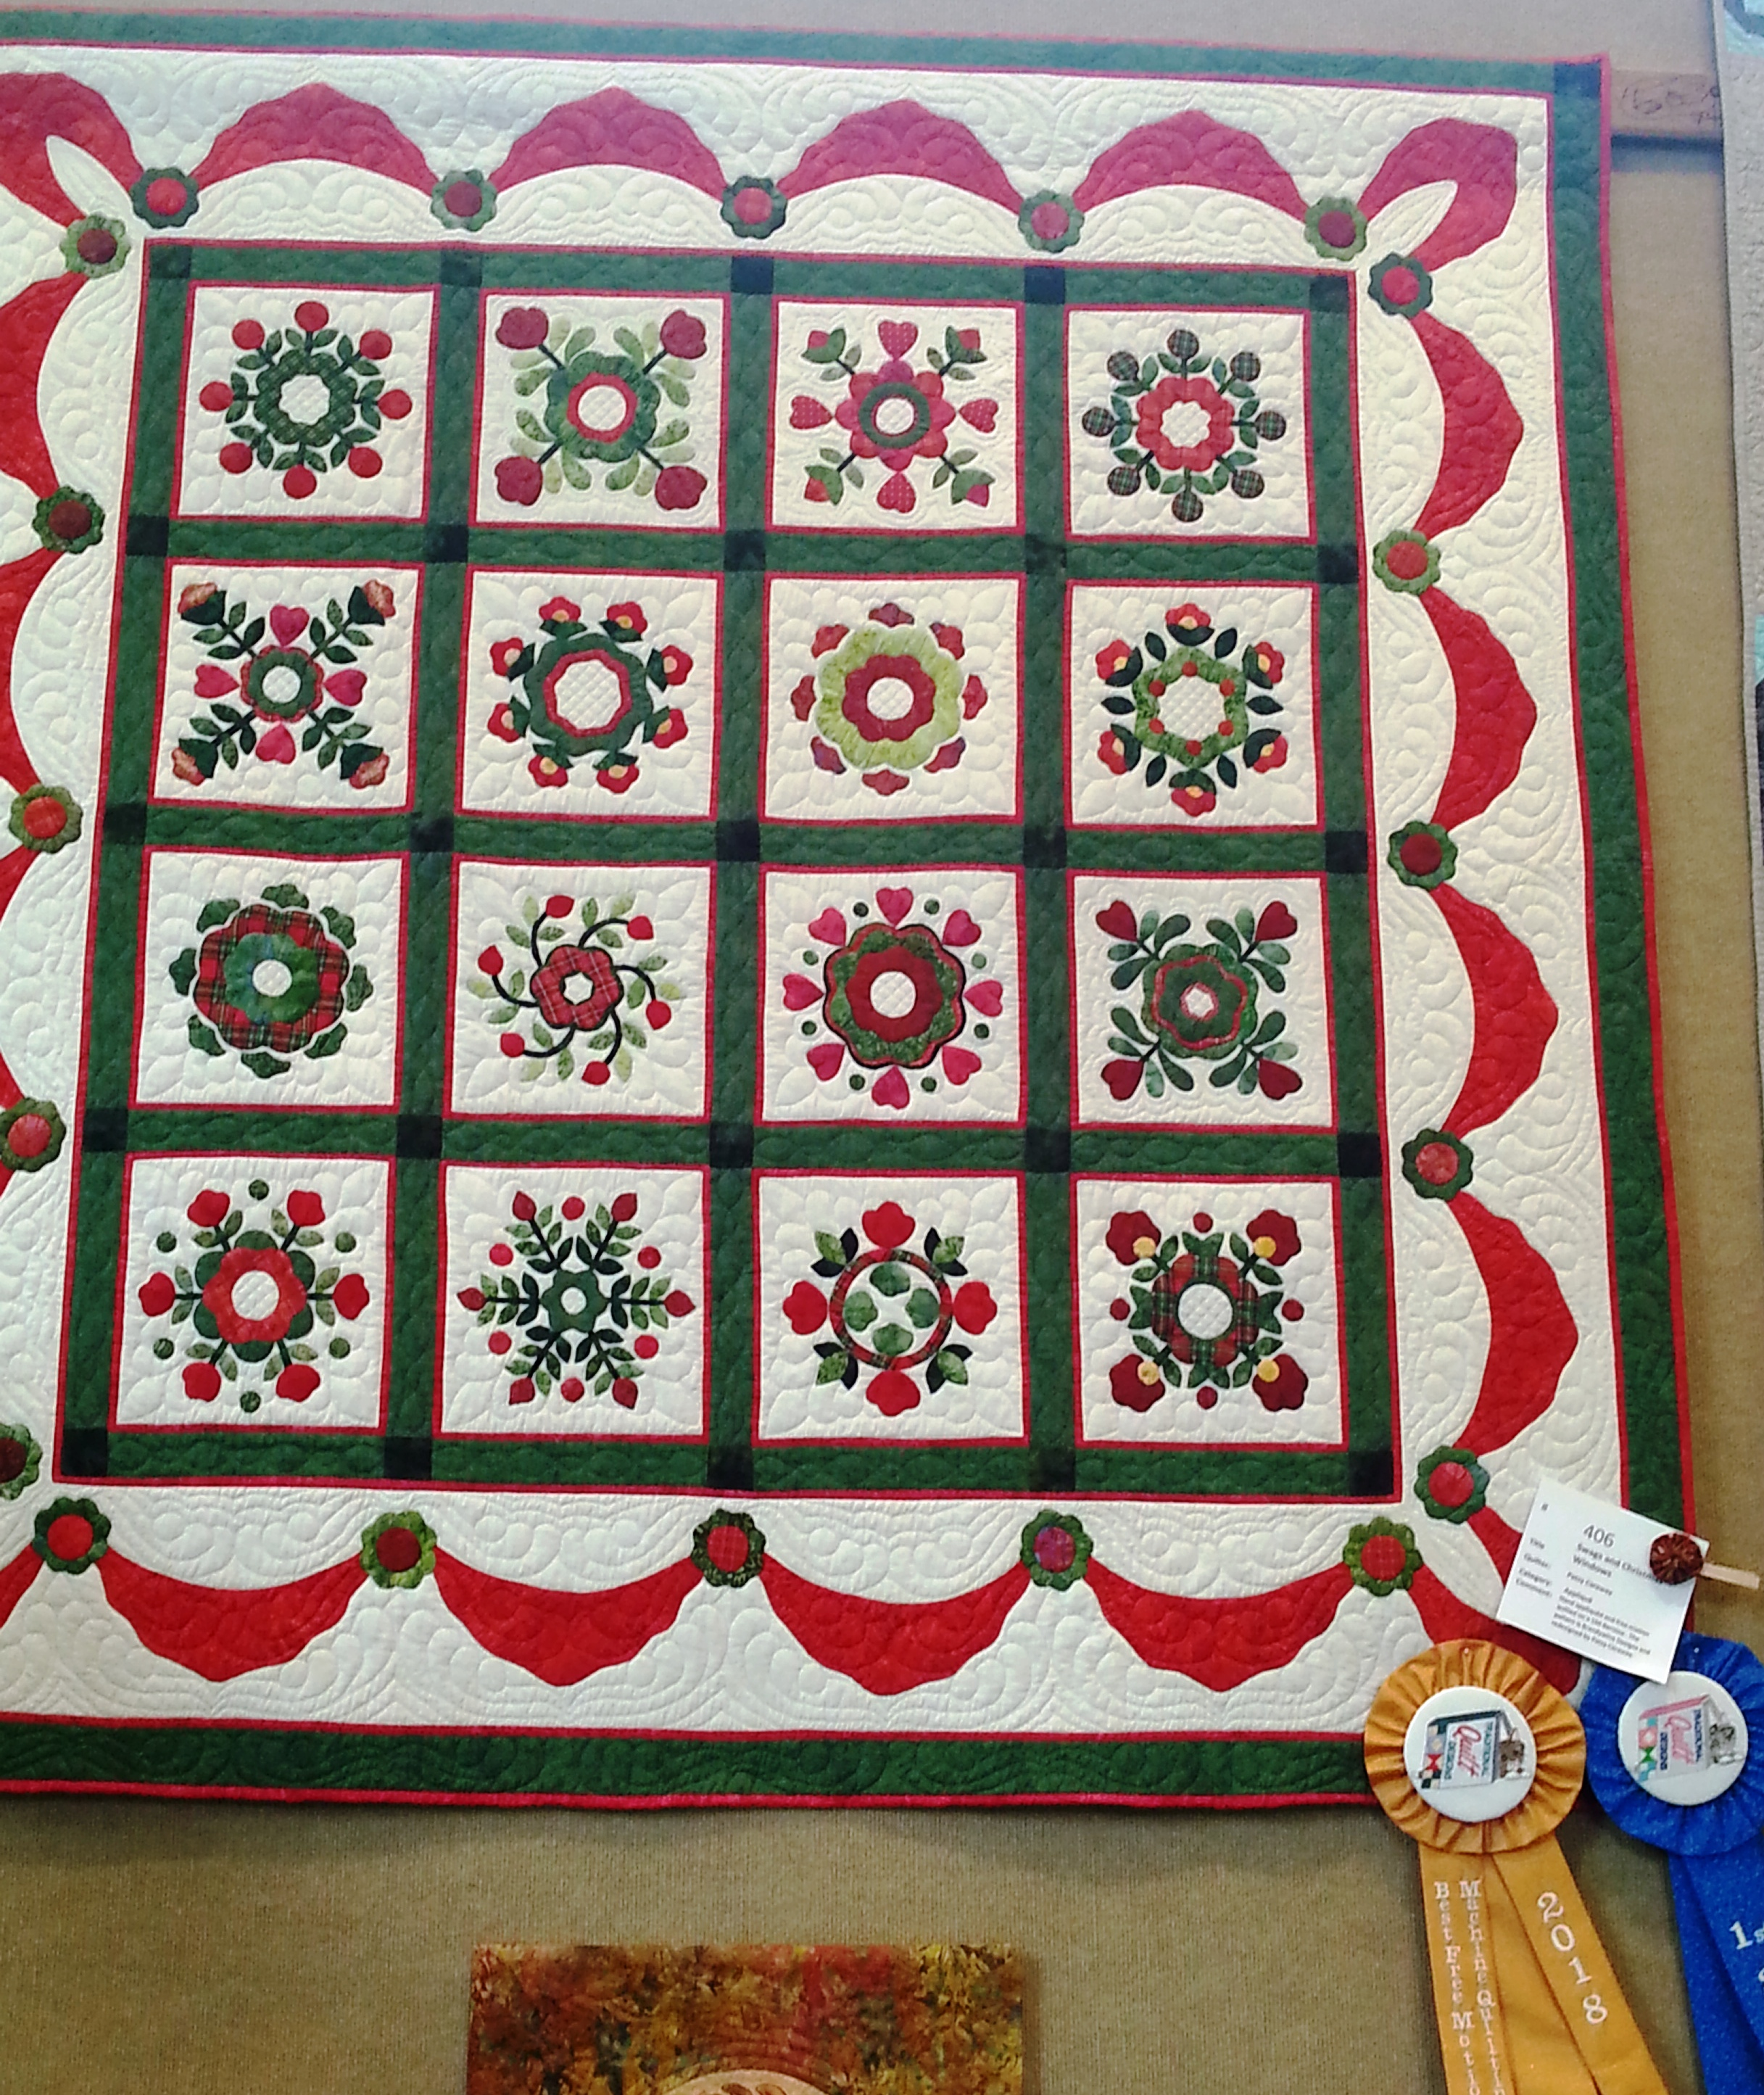 Best Free Motion Machine Quilting and 1st Place - Applique